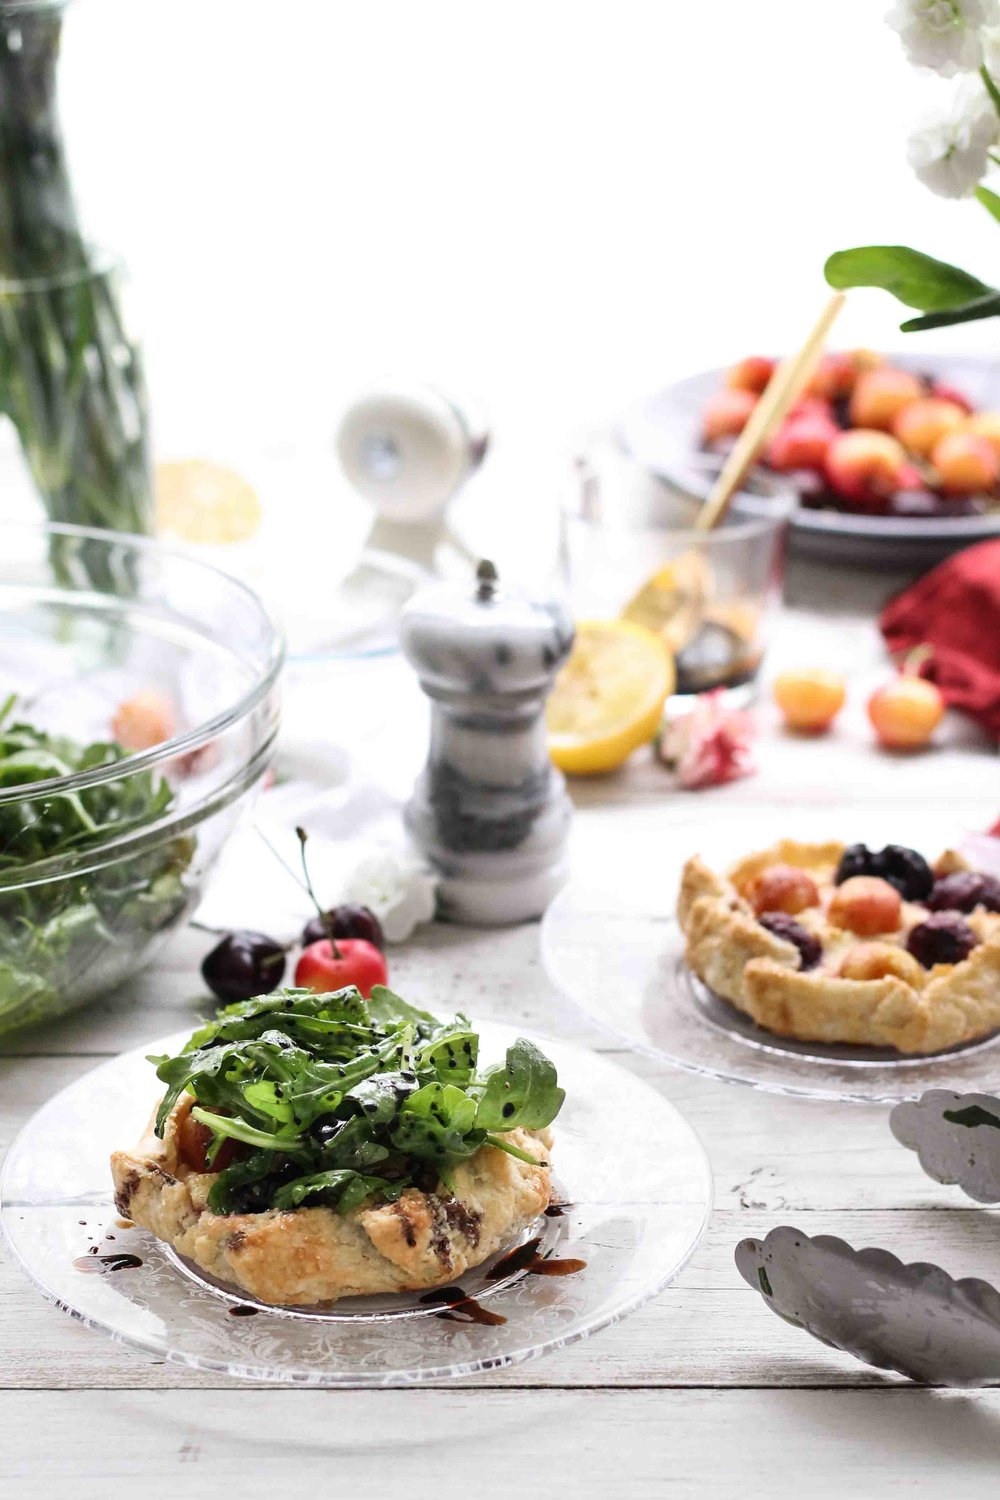 Cherry & Chèvre Galettes with Arugula and Balsamic {Pedantic Foodie}